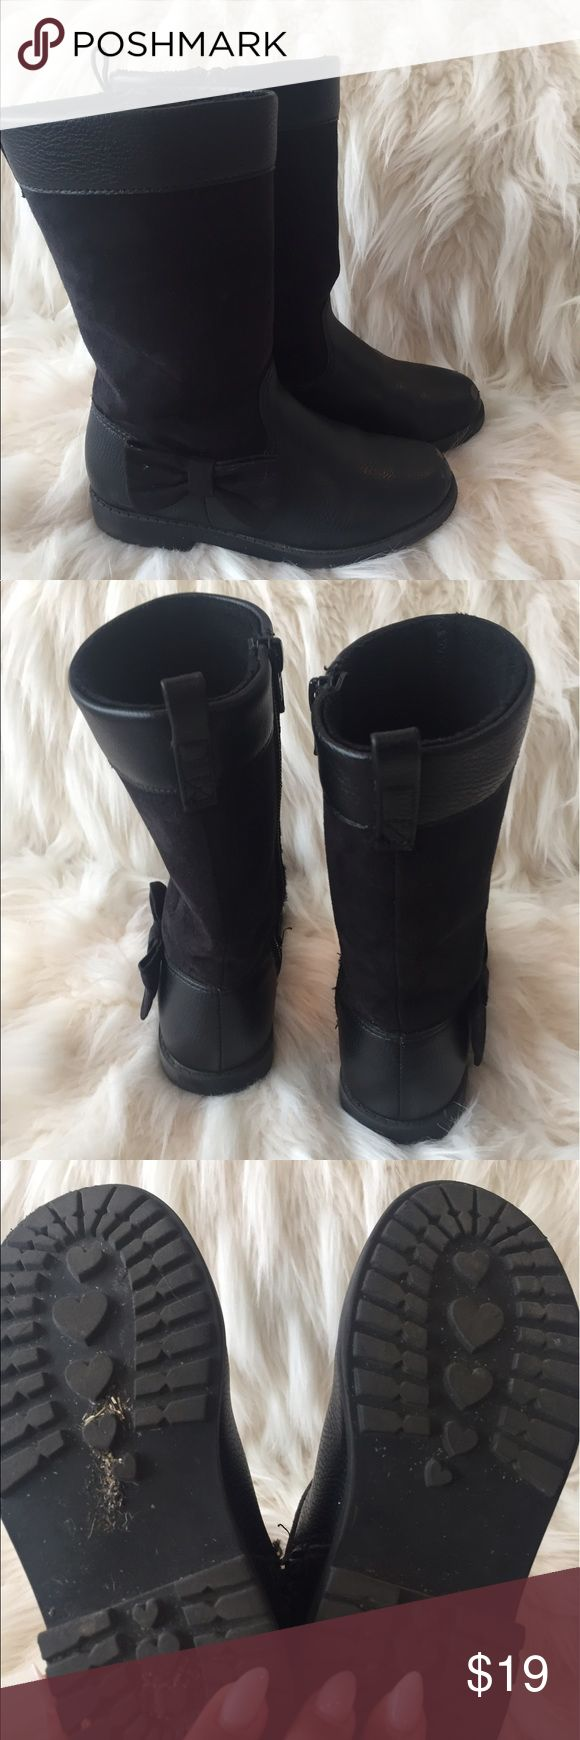 Toddler Girls H&M Boots Cute toddler girls boots, good condition. Some scuffing on the top of toes as shown in last pic. My girl runs and plays hard and loved these so I'm assuming they are comfortable, she just put grew! Home is smoke and pet free. H&M Shoes Boots